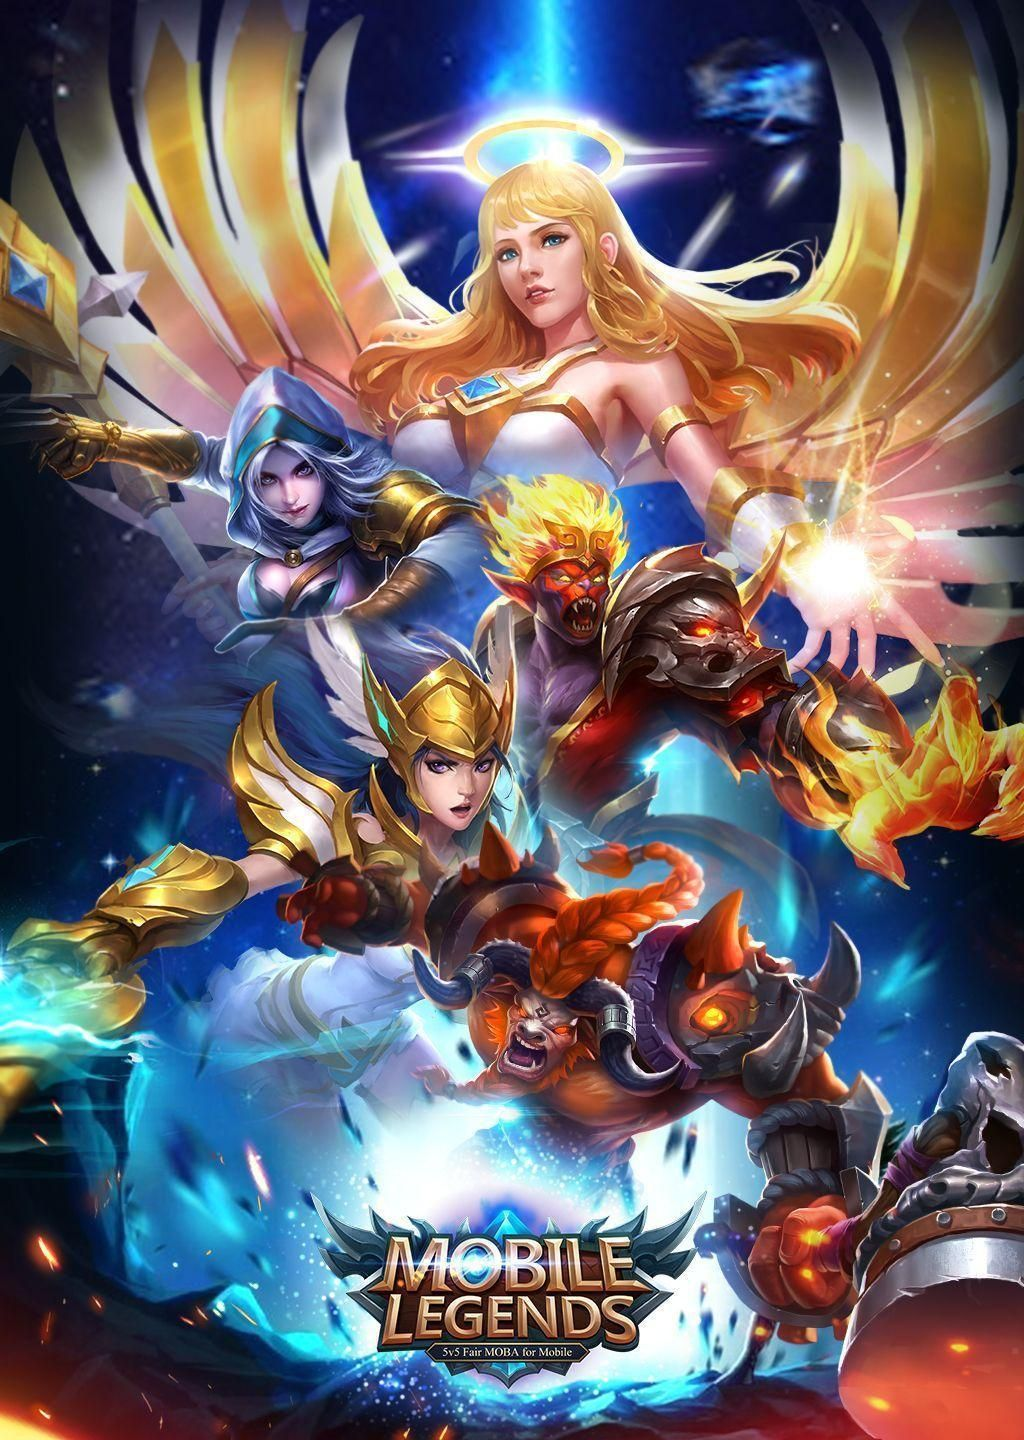 Mobile Legends Wallpapers Wallpaper Cave With Images Mobile